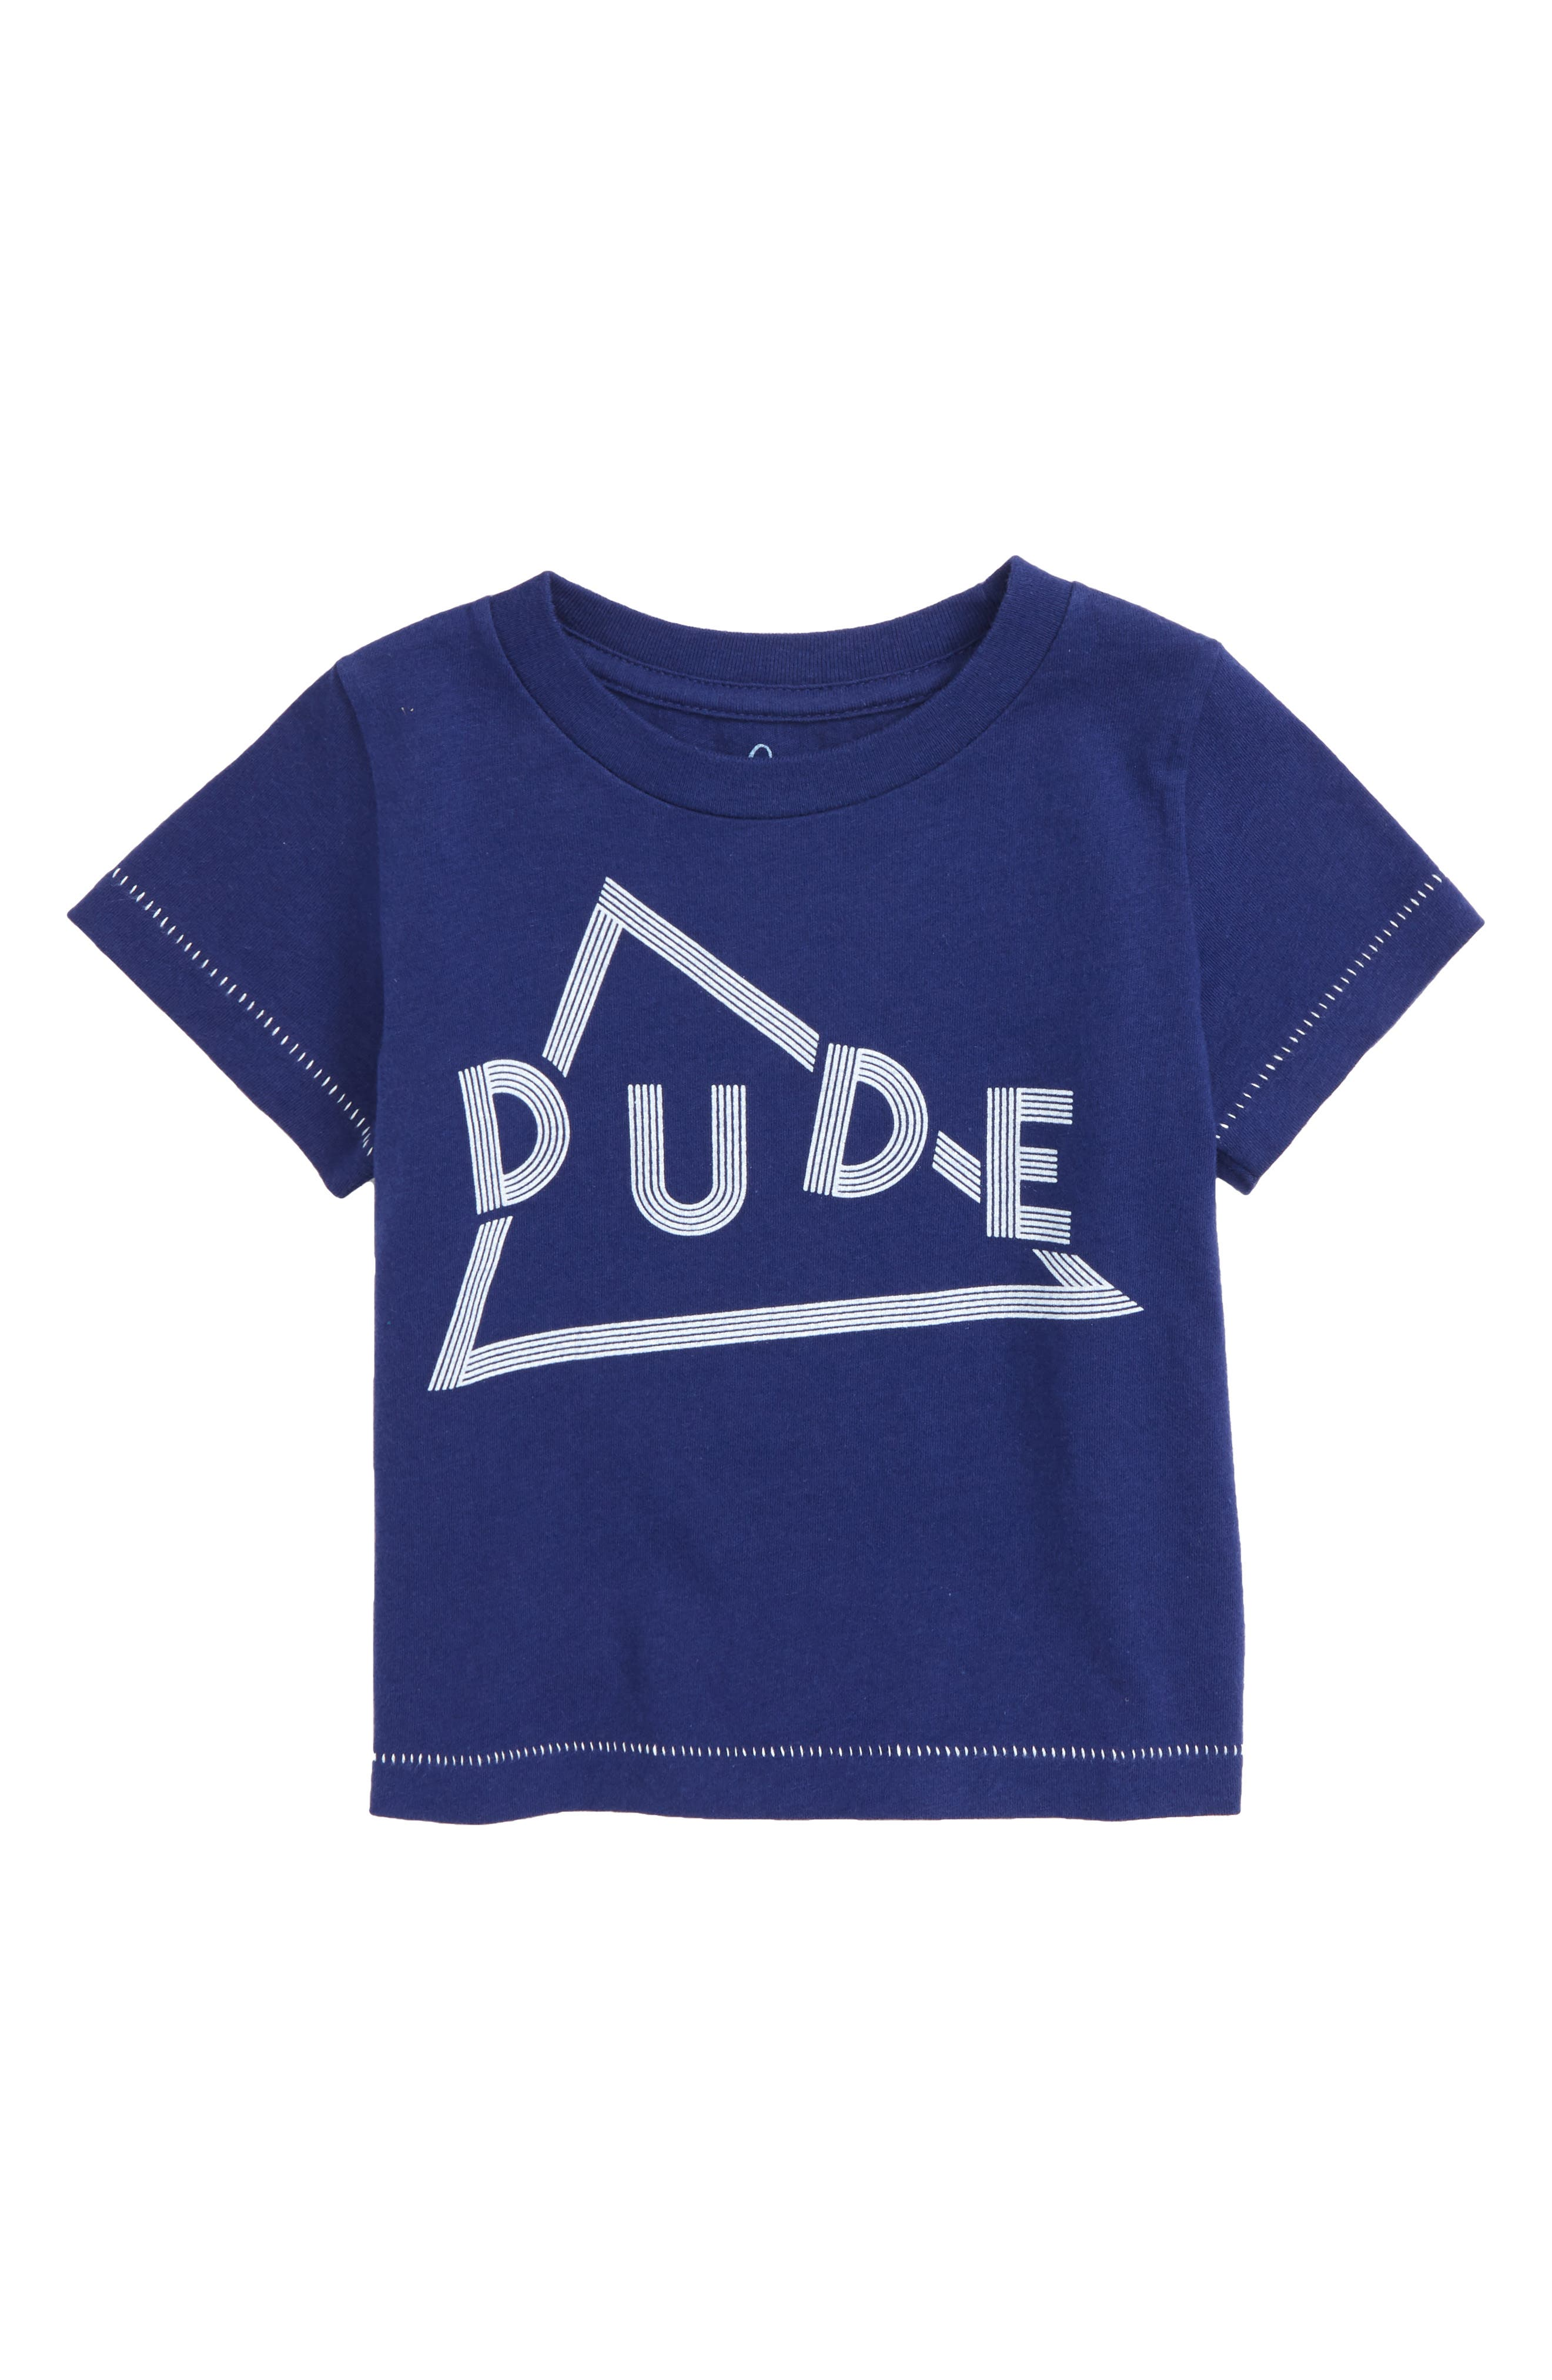 Dude Graphic T-Shirt,                         Main,                         color, Navy